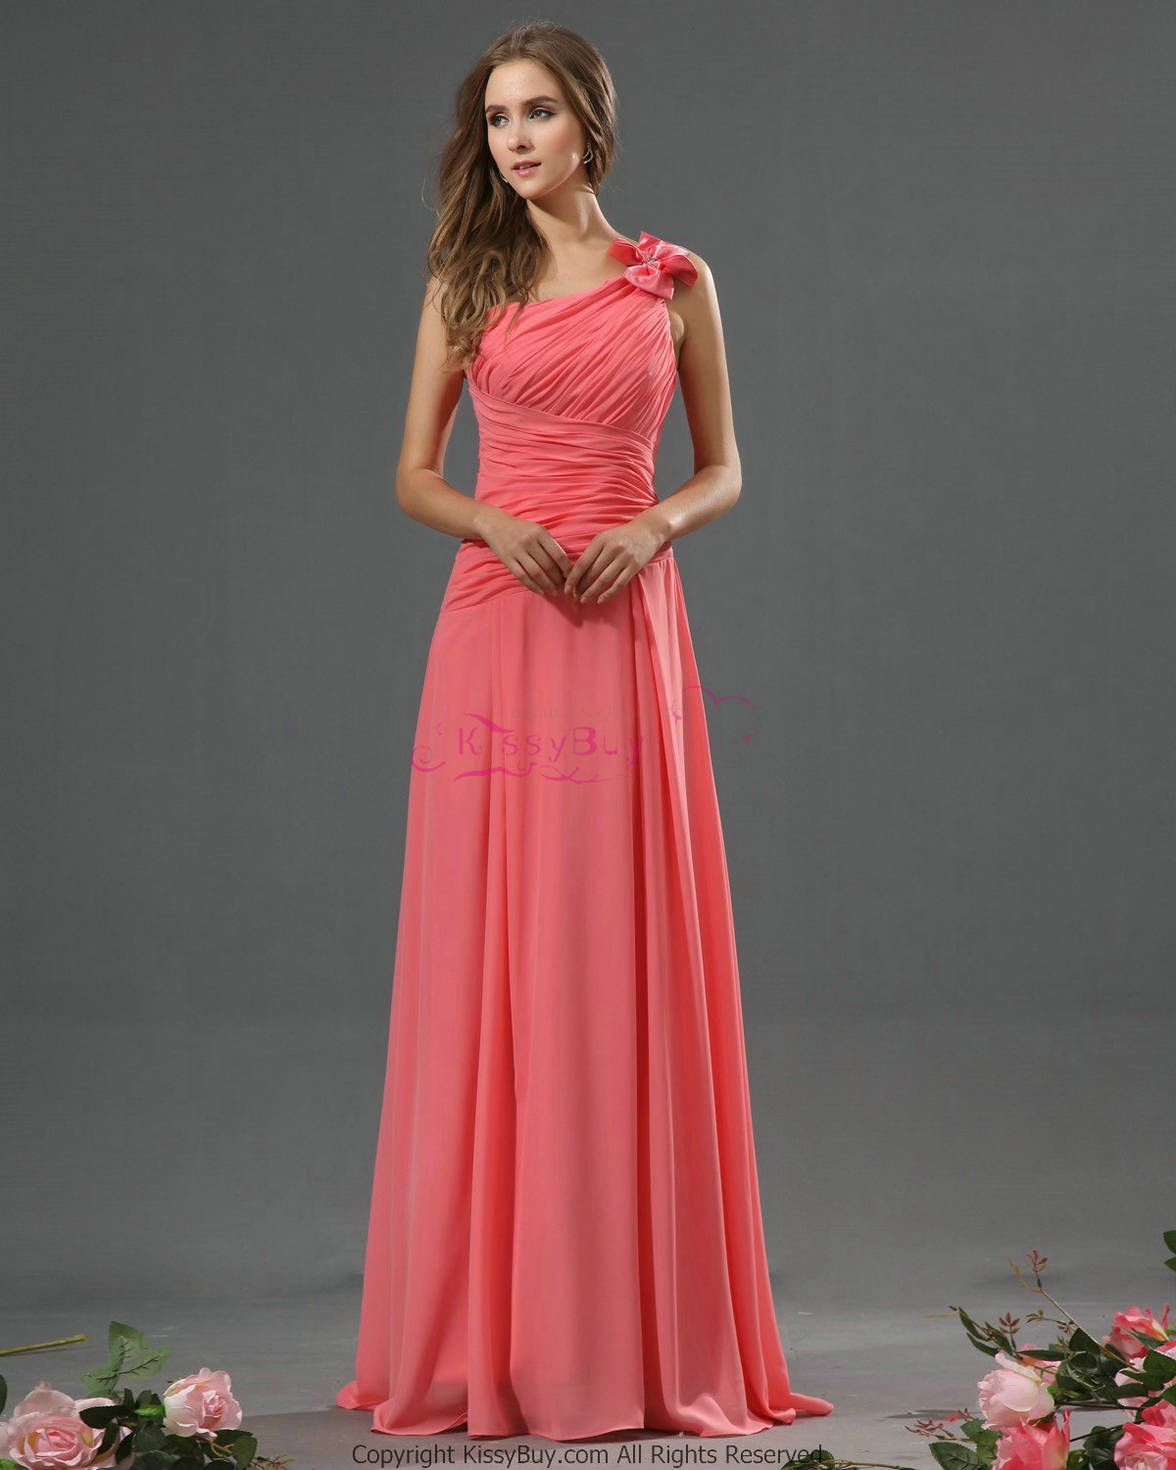 Most popular new one shoulder chiffon crinkle coral long most popular new one shoulder chiffon crinkle coral long bridesmaid dresses 2015 ombrellifo Image collections